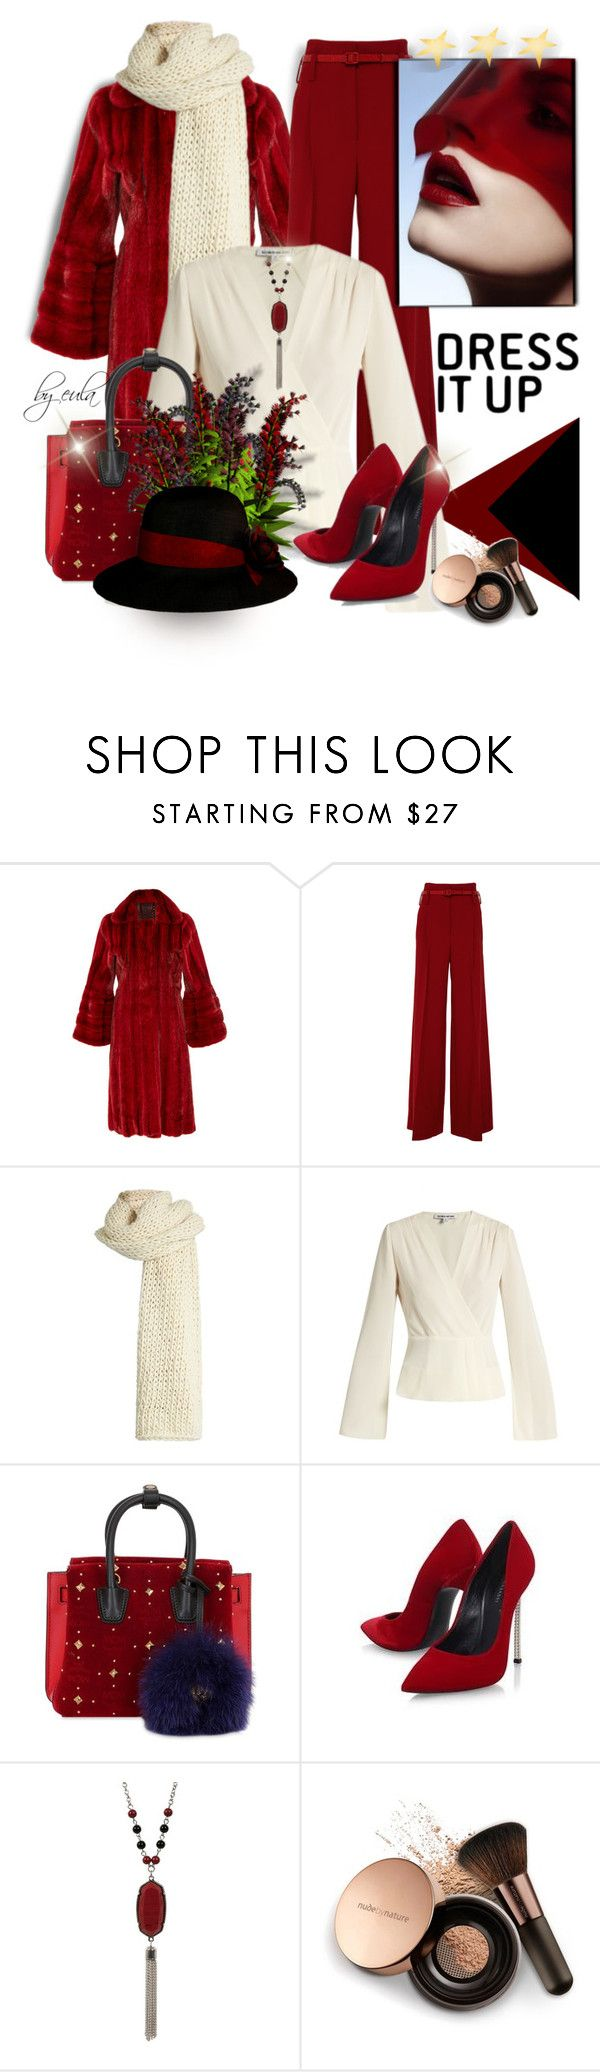 """""""Dress it Up"""" by eula-eldridge-tolliver ❤ liked on Polyvore featuring Natasha Zinko, J. Mendel, I Love Mr. Mittens, Elizabeth and James, MCM, Casadei, Nude by Nature, WorkWear, MyStyle and January"""